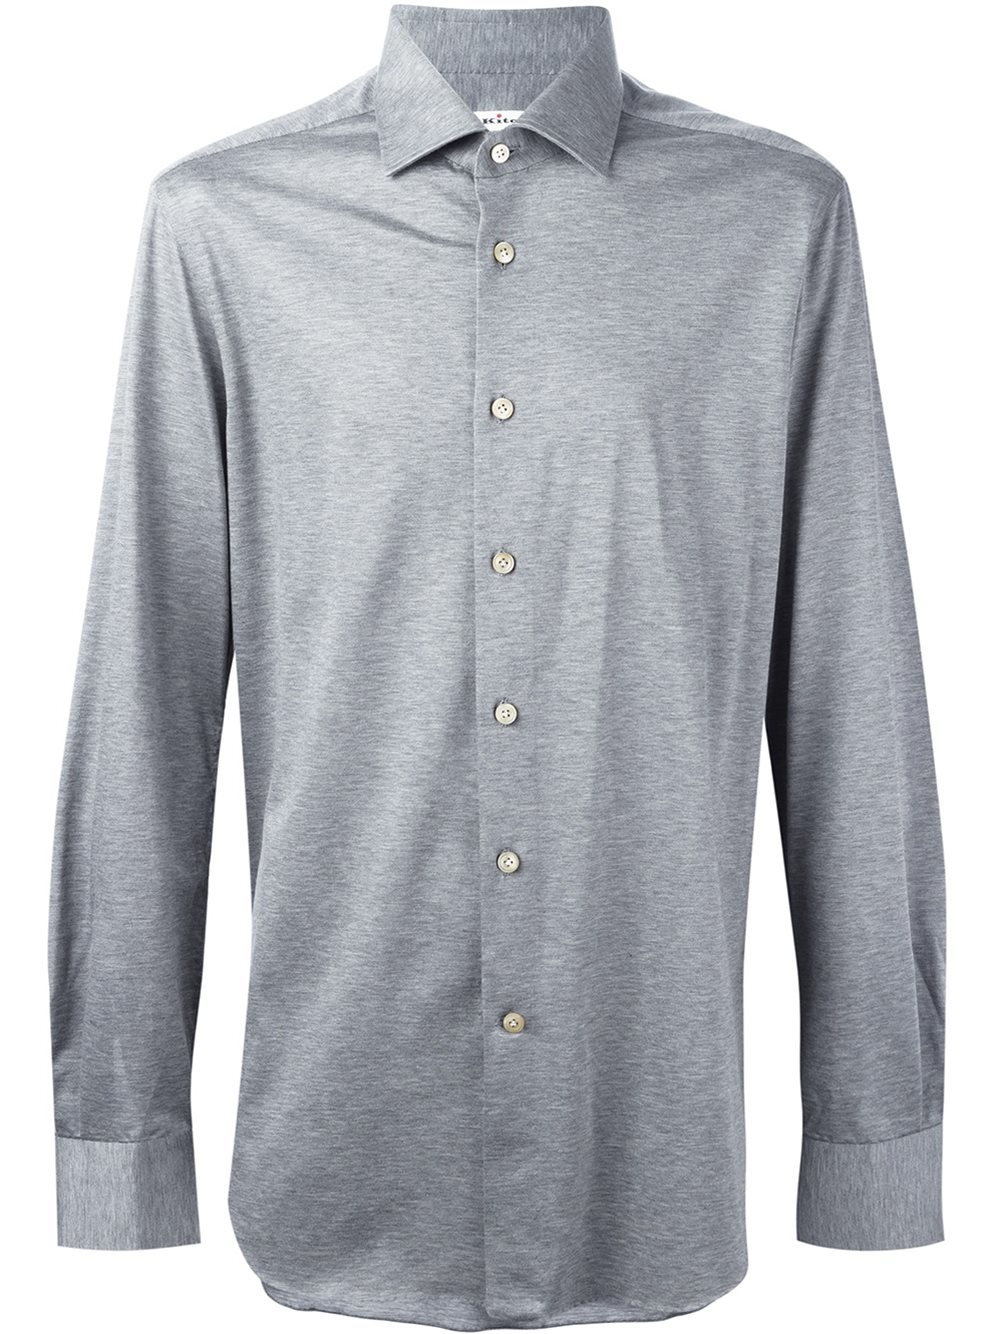 Kiton melange button down shirt in gray for men lyst for Grey button down shirt